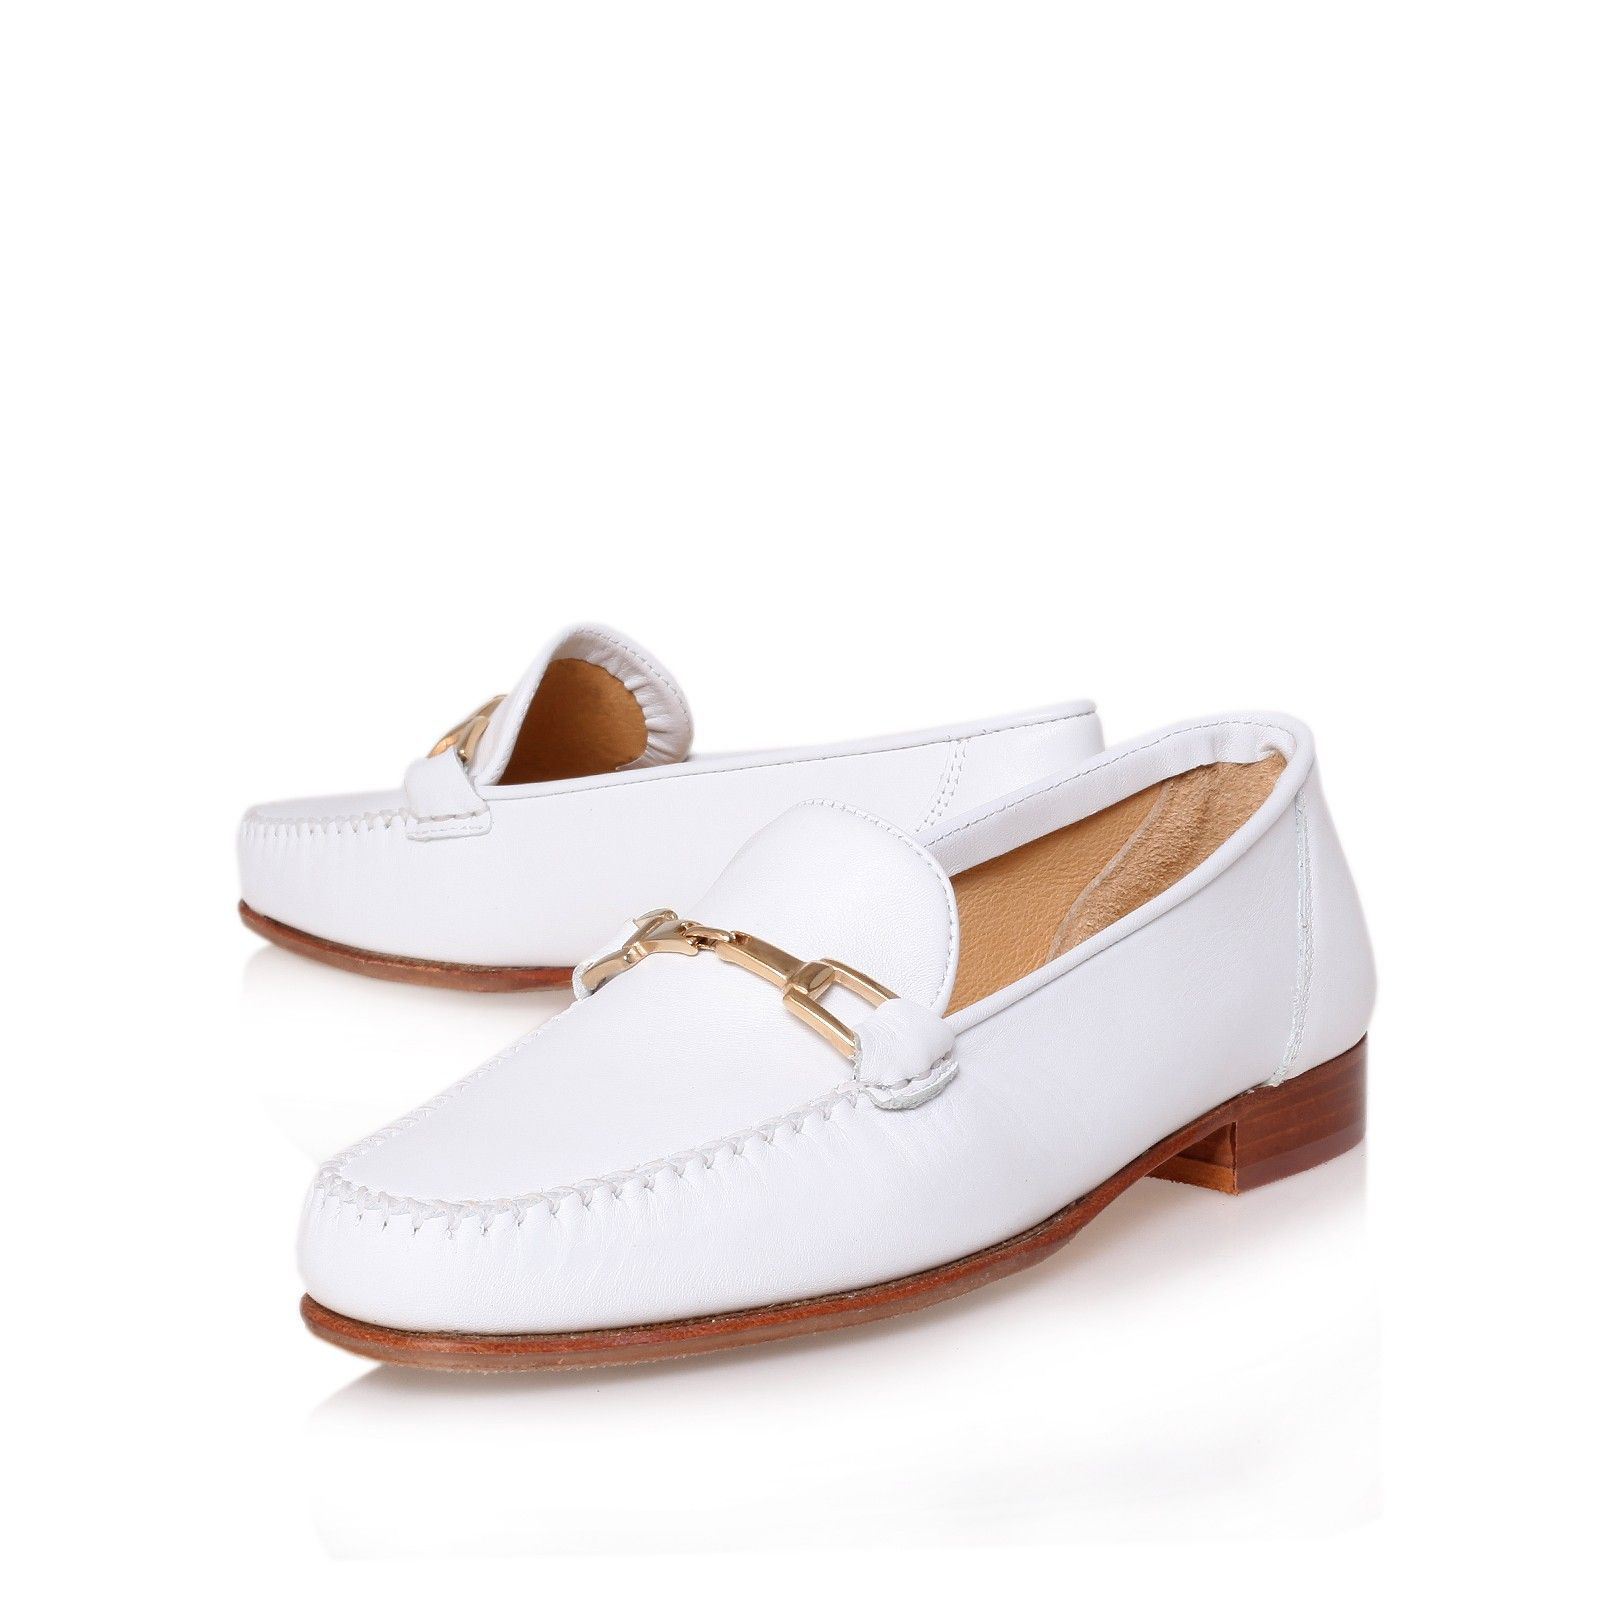 2016 Hot Sale Carvela Lychee Slip On Shoes Women Silver AJHS61